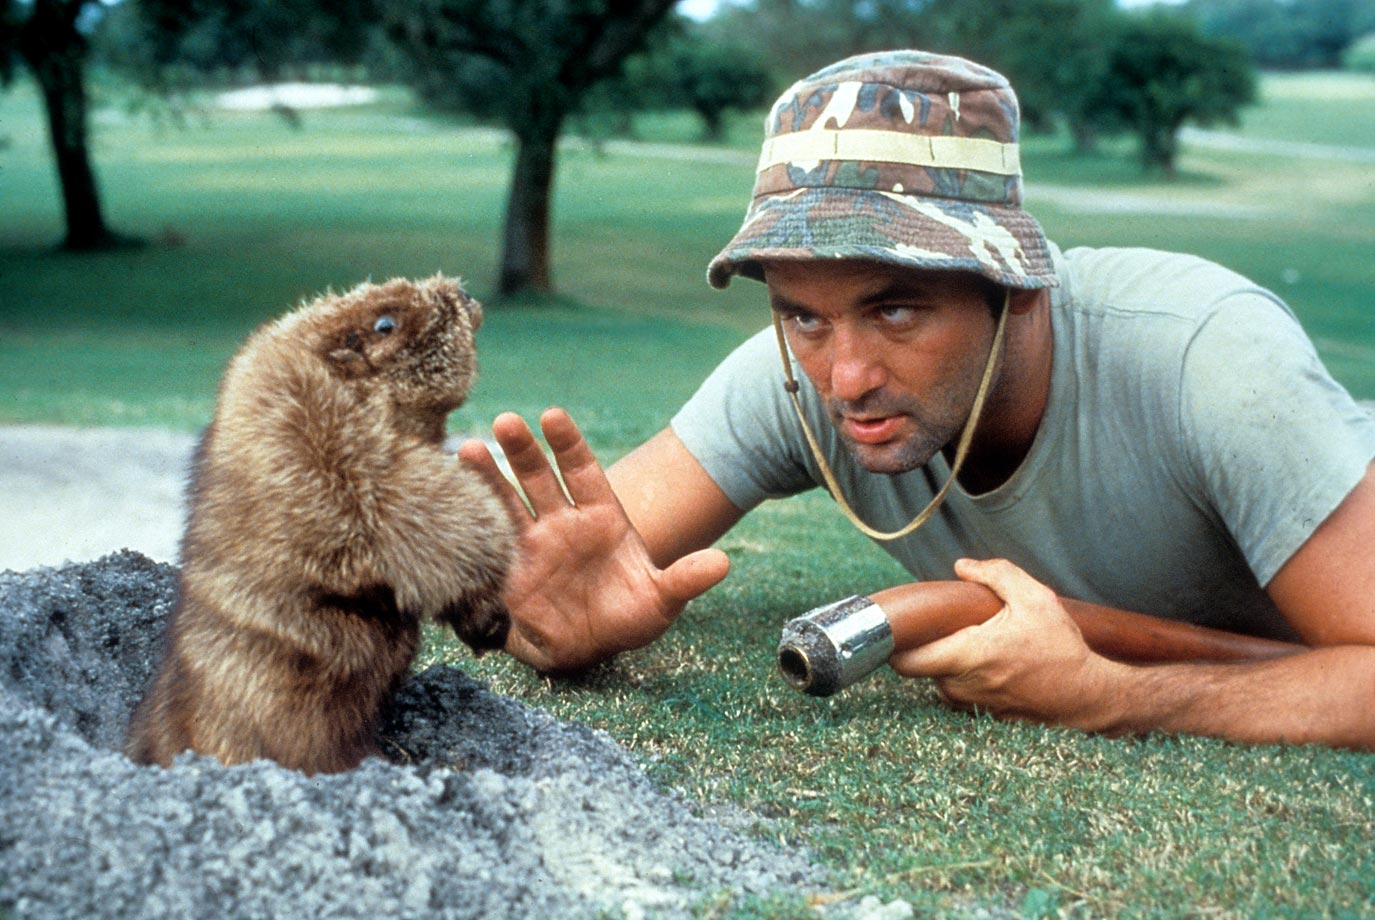 Bill Murray plays the groundskeeper Carl trying to kill a gopher in the 1980 film 'Caddyshack.'